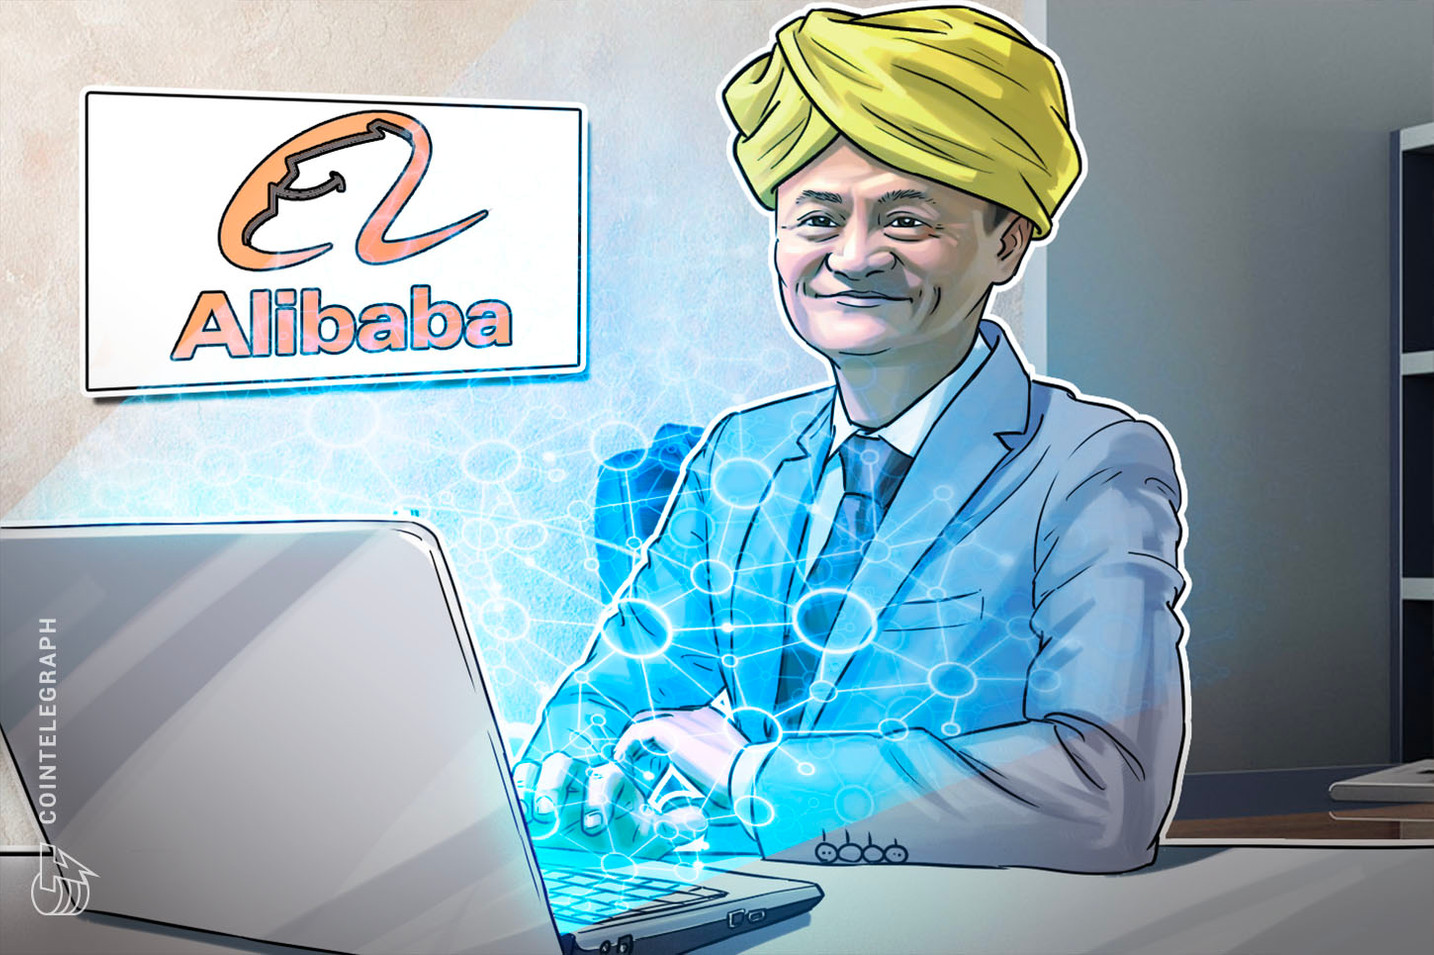 Alibaba Files Patent for Blockchain System That Allows 'Administrative Intervention'